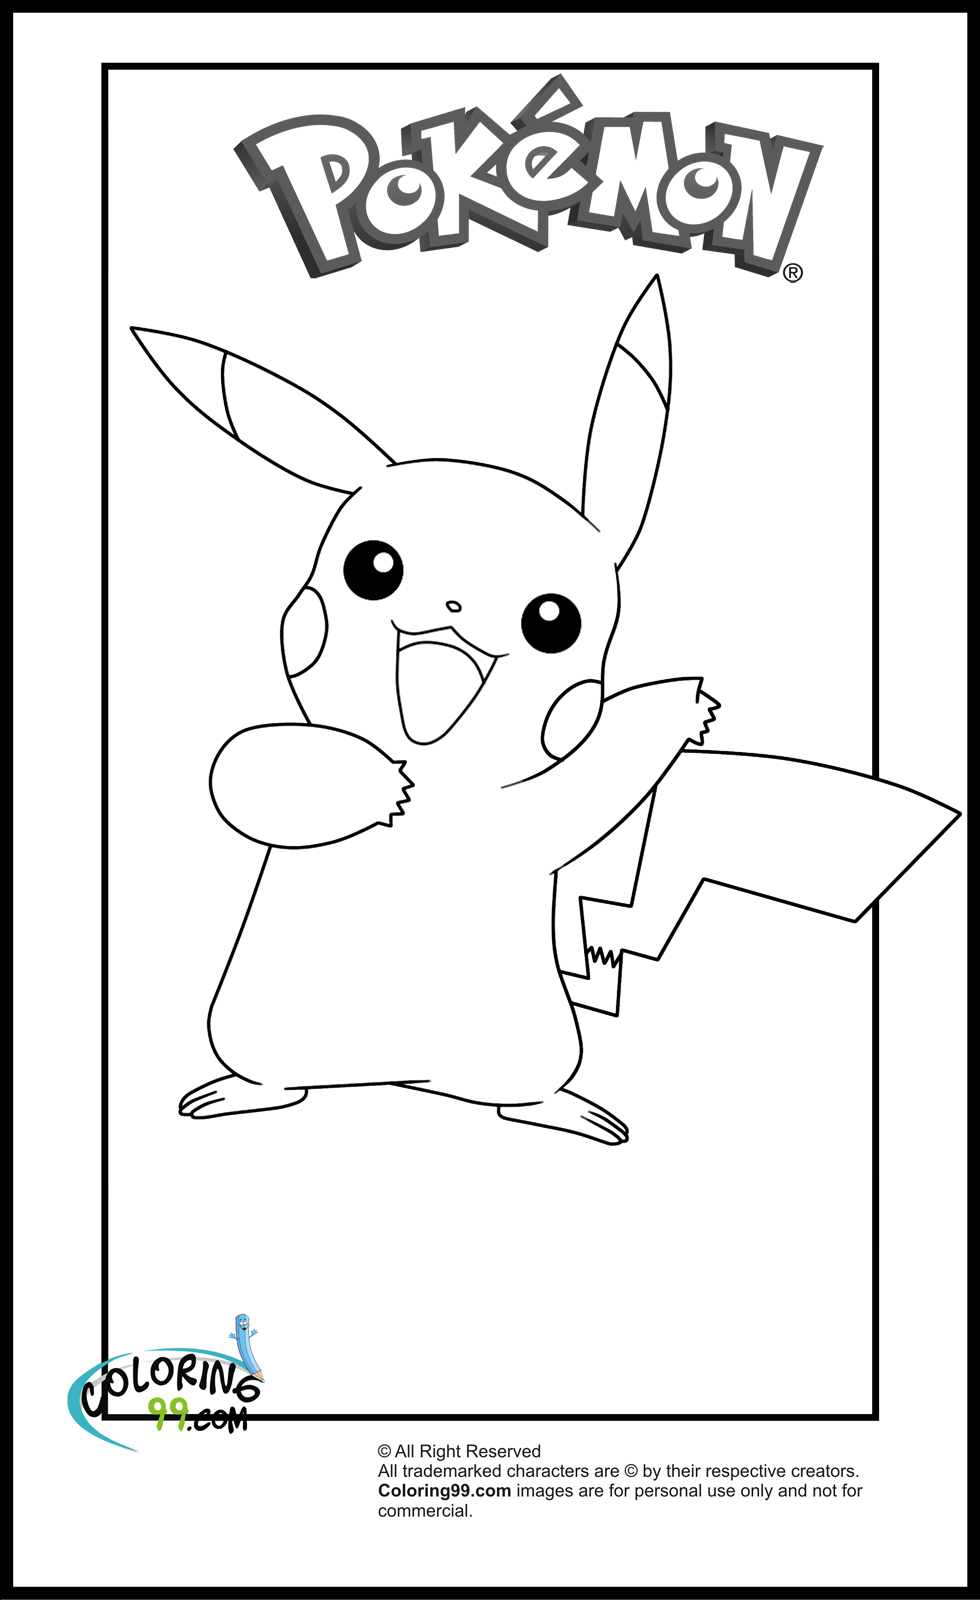 Pikachu coloring pages minister coloring for Pikachu coloring page